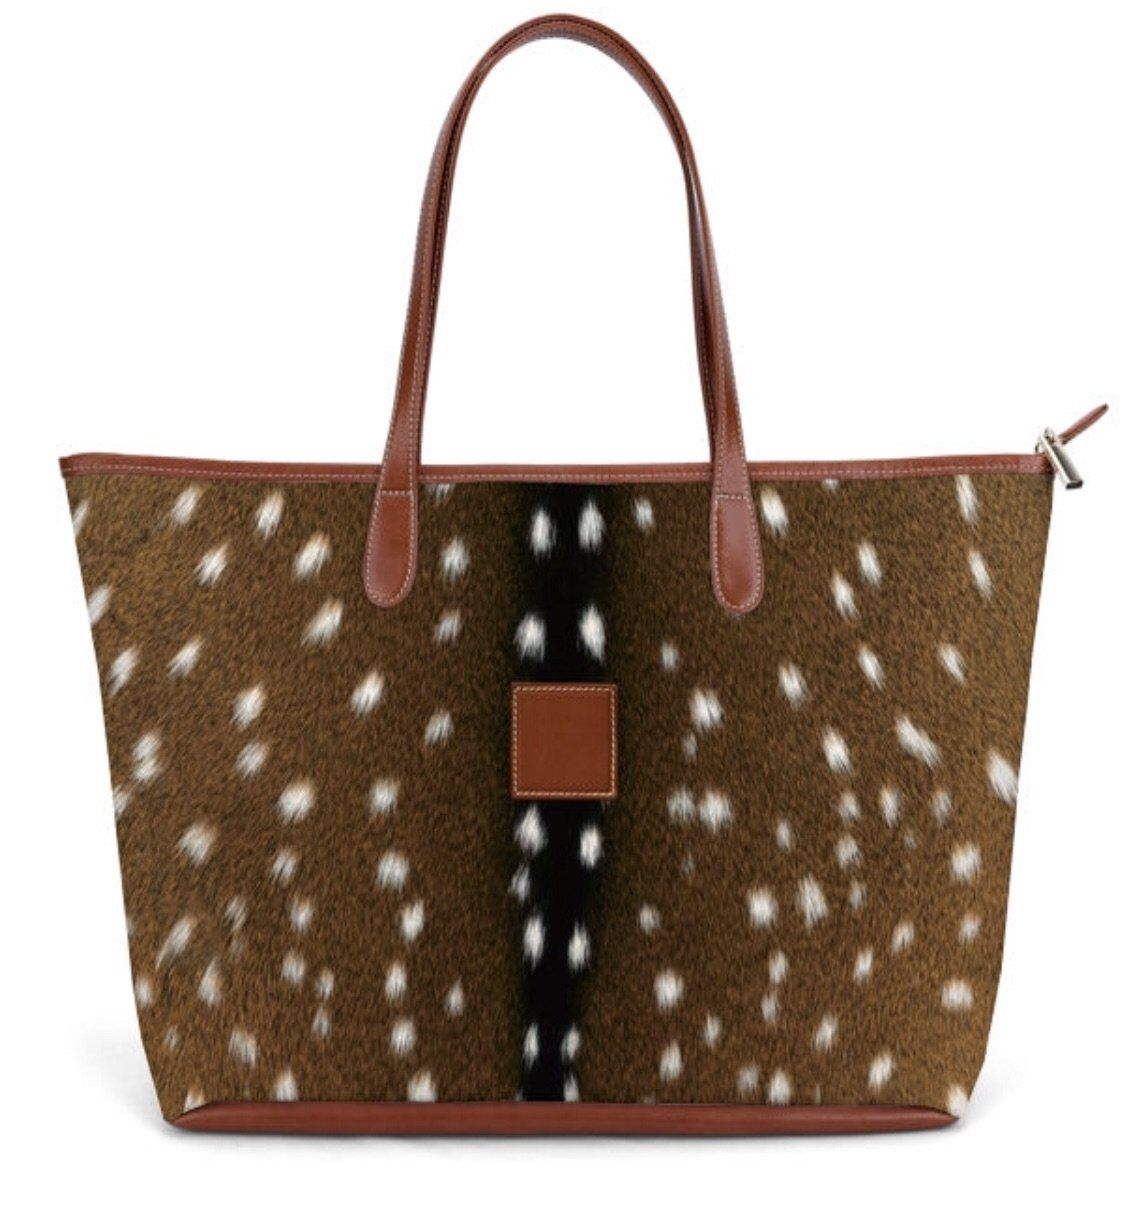 Myra Bag Grand Cowhide Leather Travel Bag S 1124 Poshmark makes shopping fun, affordable & easy! mac burger pizza